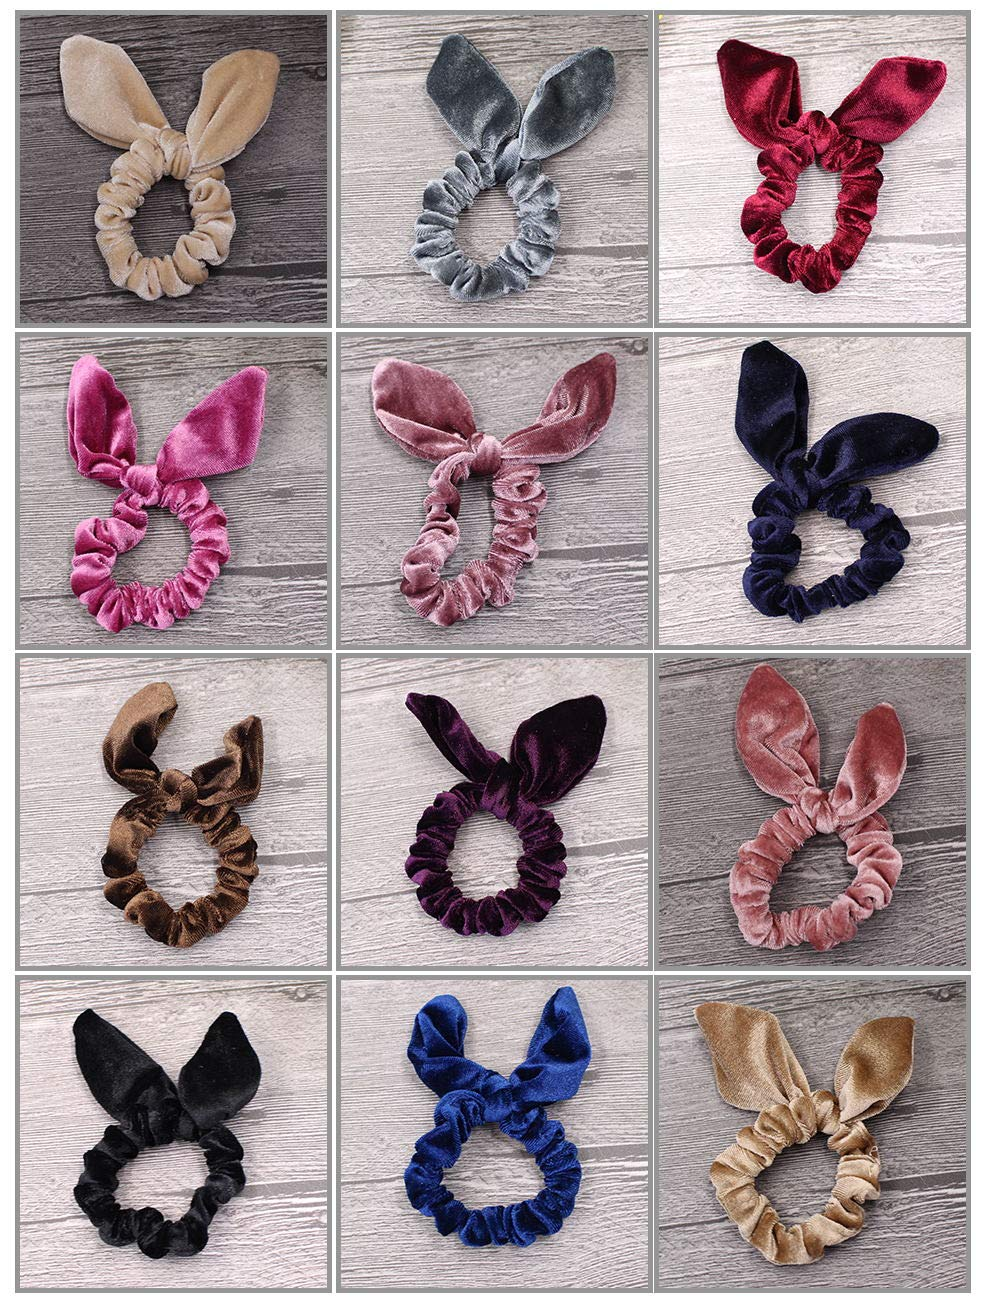 12 Pack Hair Scrunchies Velvet Elastic Hair Bands Scrunchy Hair Ties Ropes Scrunchies for Women or Girls Hair Accessories, Rabbit Ear Scrunchie Md trade